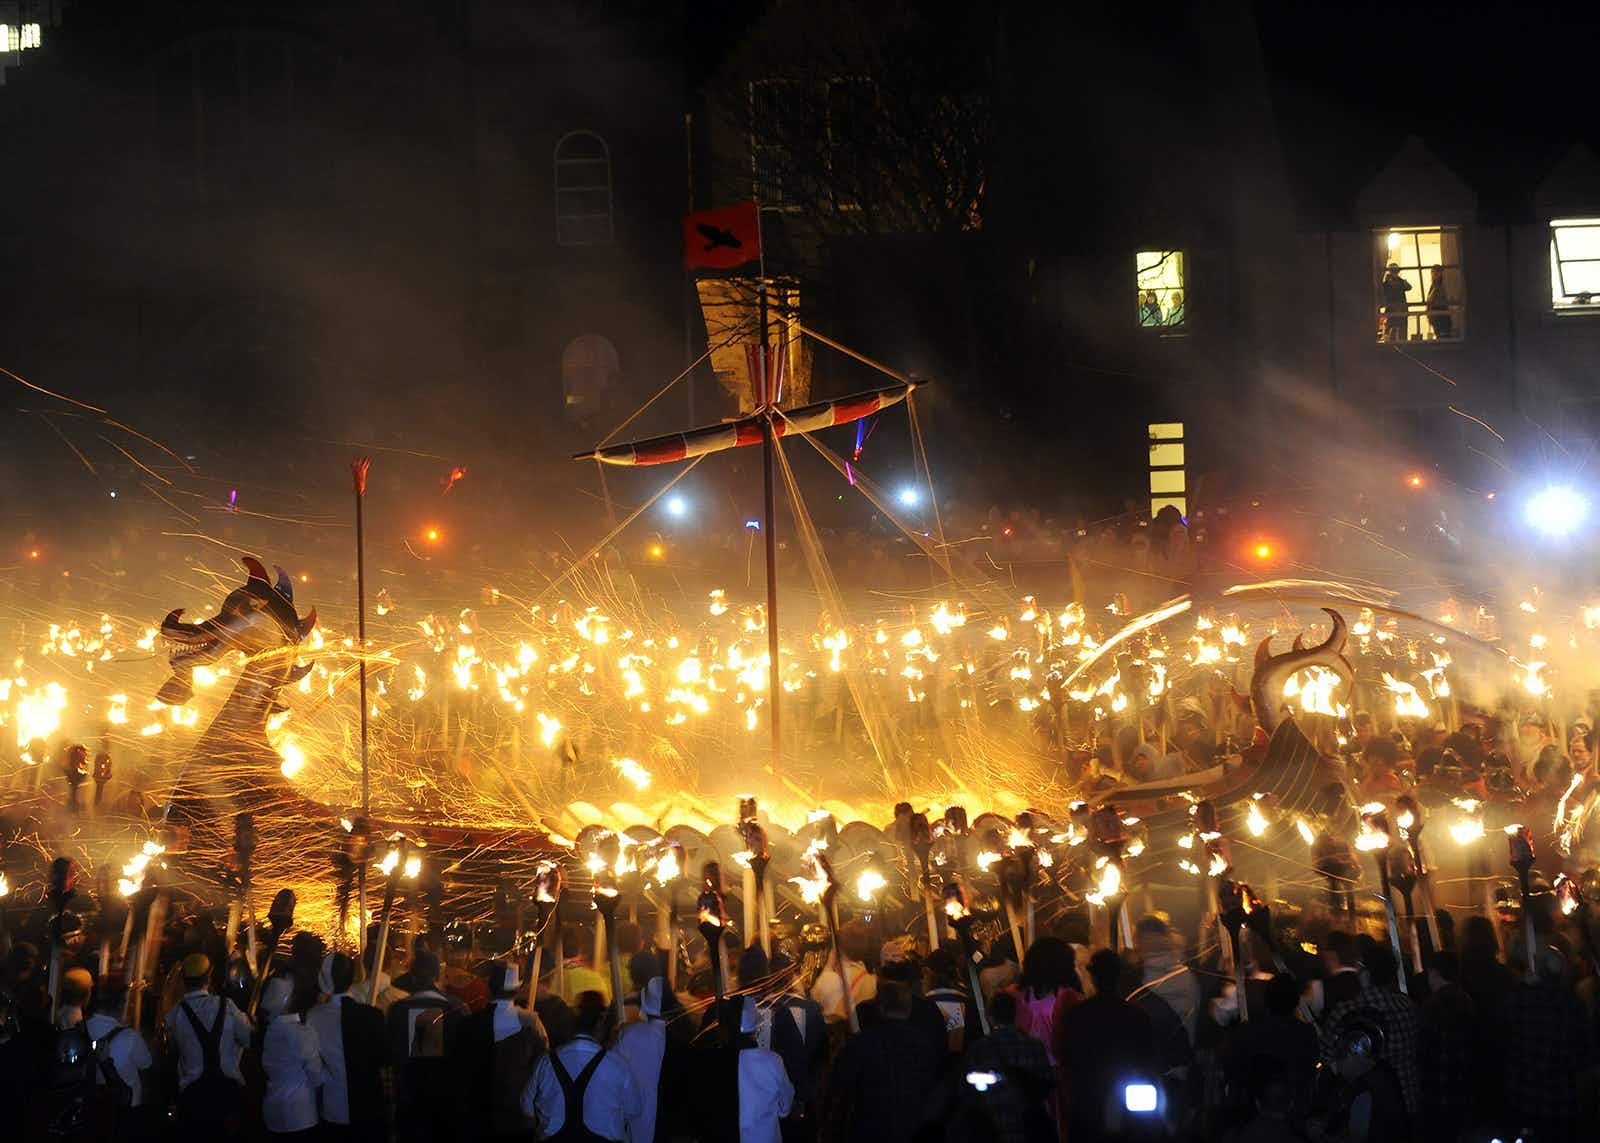 Members of the Viking Jarl Squad surround their leader or 'Guizer Jarl' on a Viking galley ship during the annual Up Helly Aa Festival in the Shetland Islands of Lerwick, on January 31, 2012. Up Helly Aa celebrates the influence of the Scandinavian vikings in the Shetland Islands and has employed this theme in the festival since 1870. The event culminates with up to 1000 'guizers' (men in costume) throwing flaming torches into a Viking longship.  AFP PHOTO / Andy Buchanan (Photo credit should read Andy Buchanan/AFP/Getty Images)